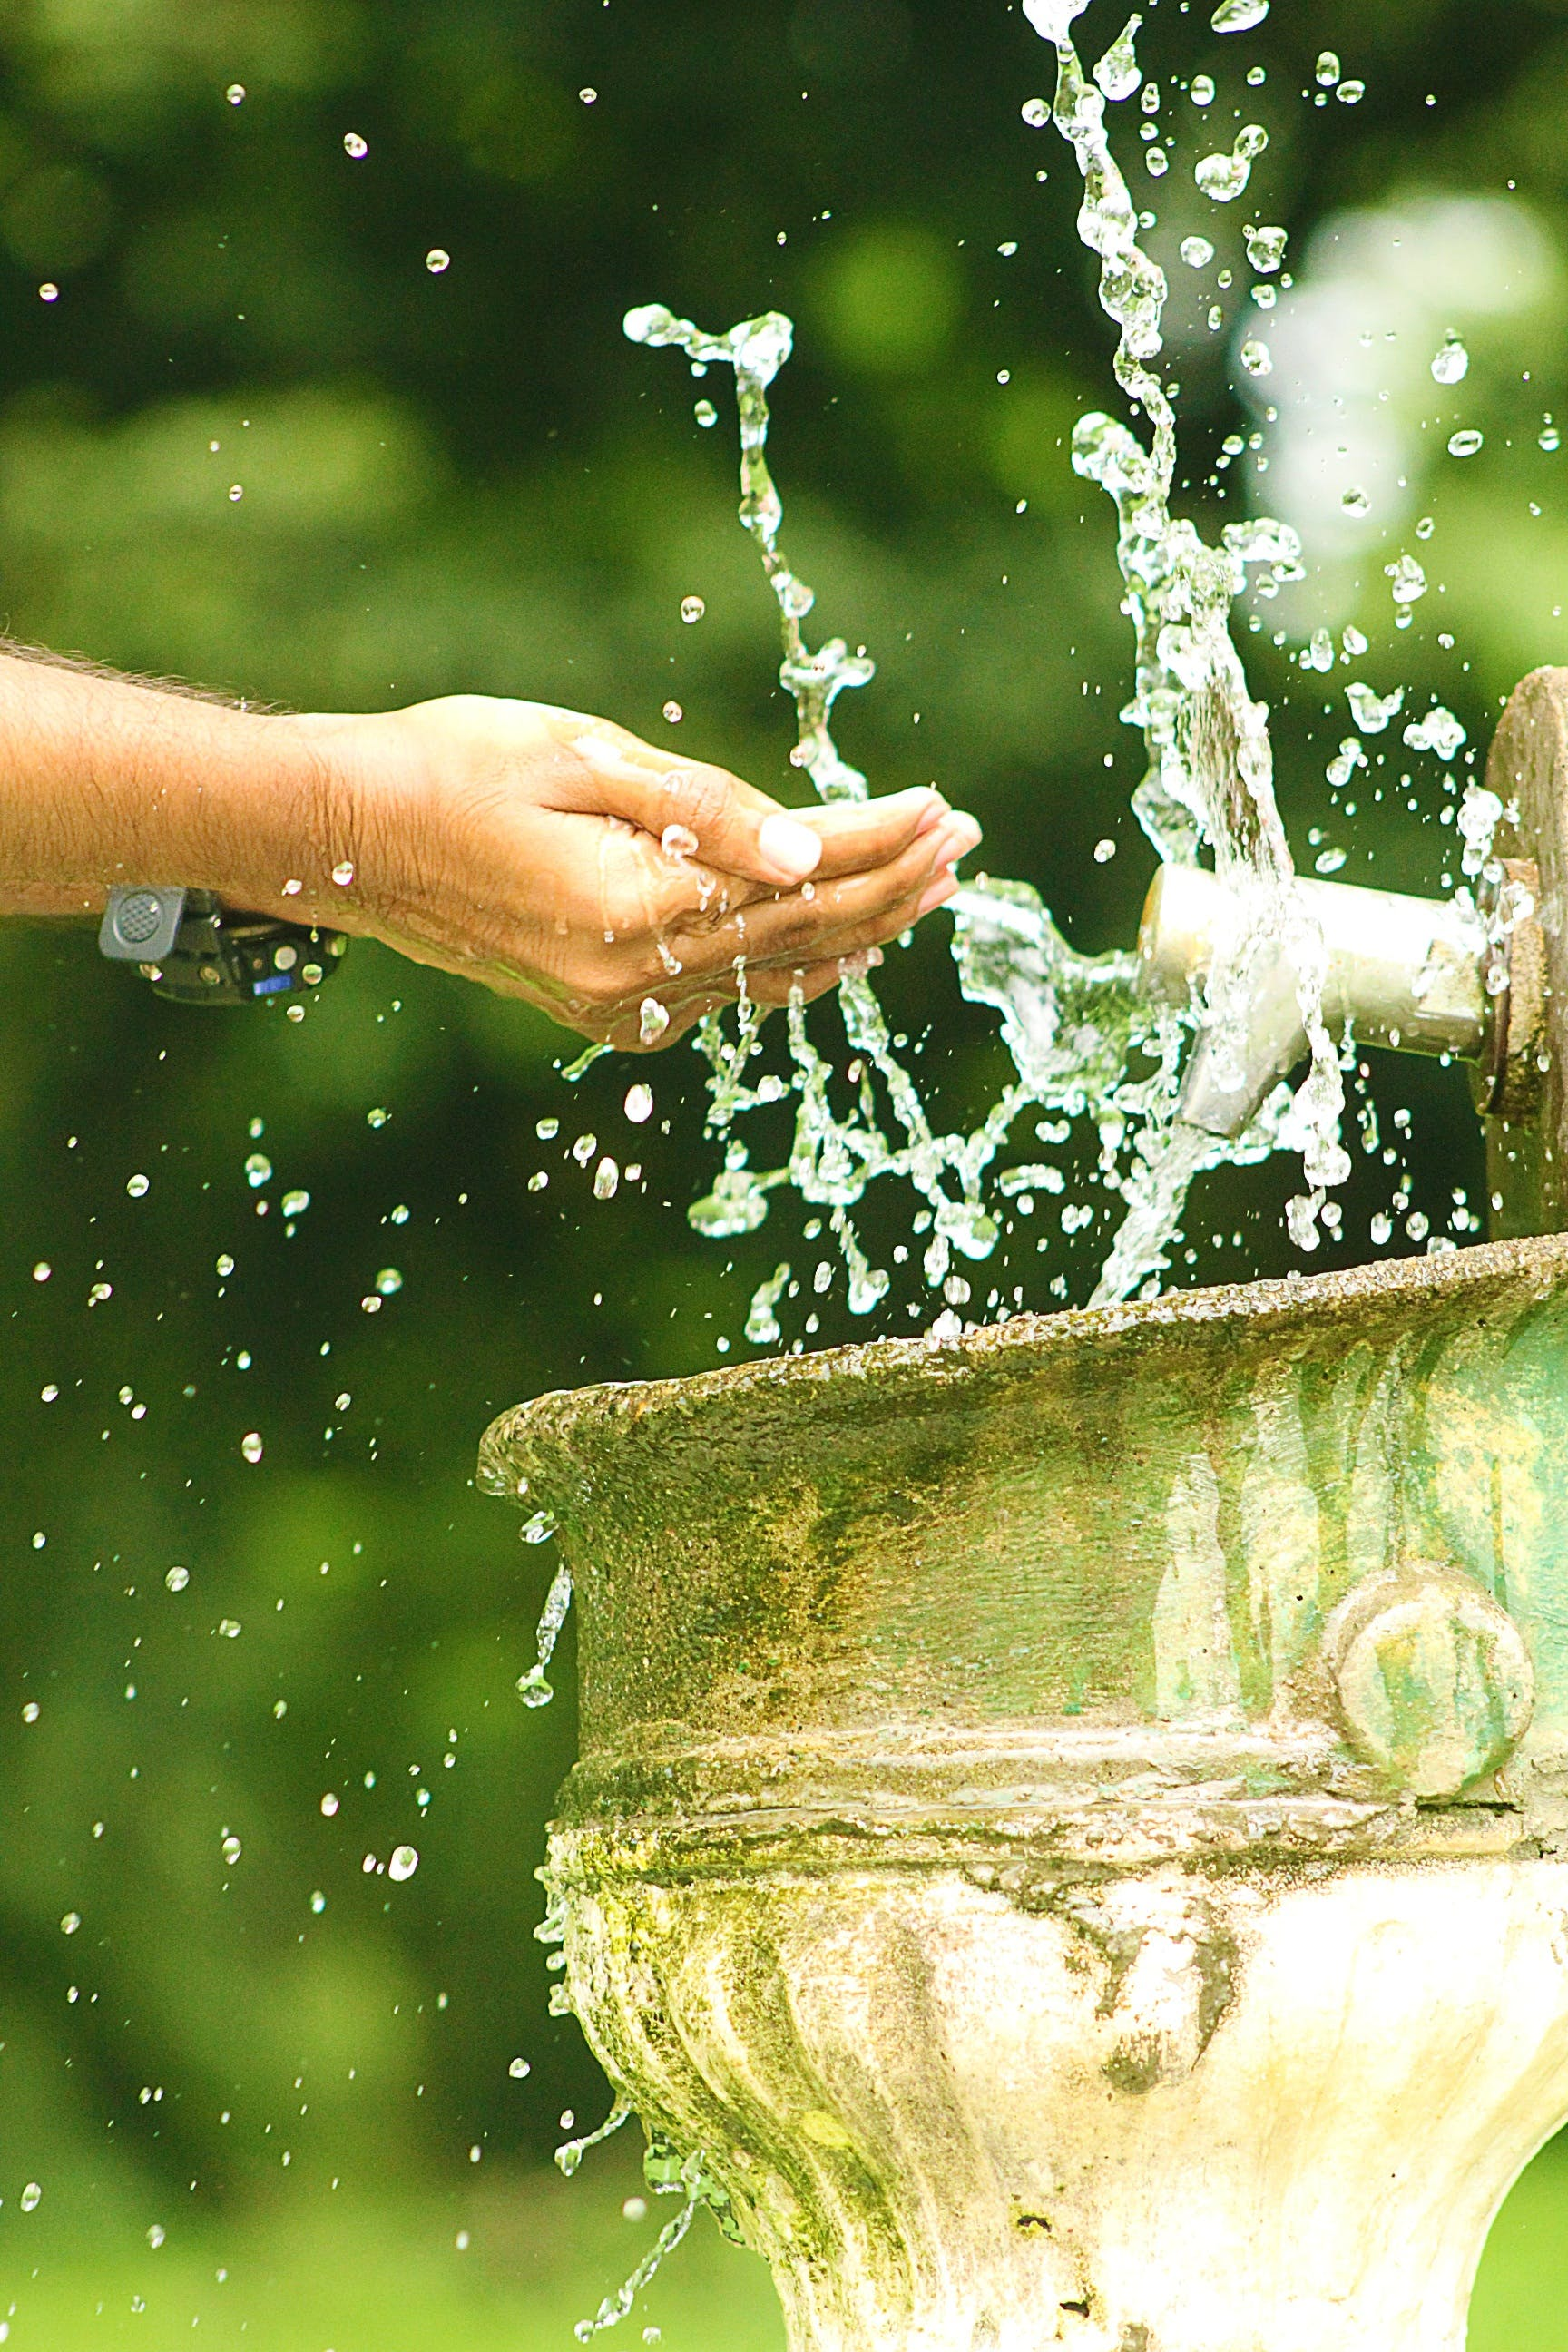 Free stock photo of nature, person, hand, water